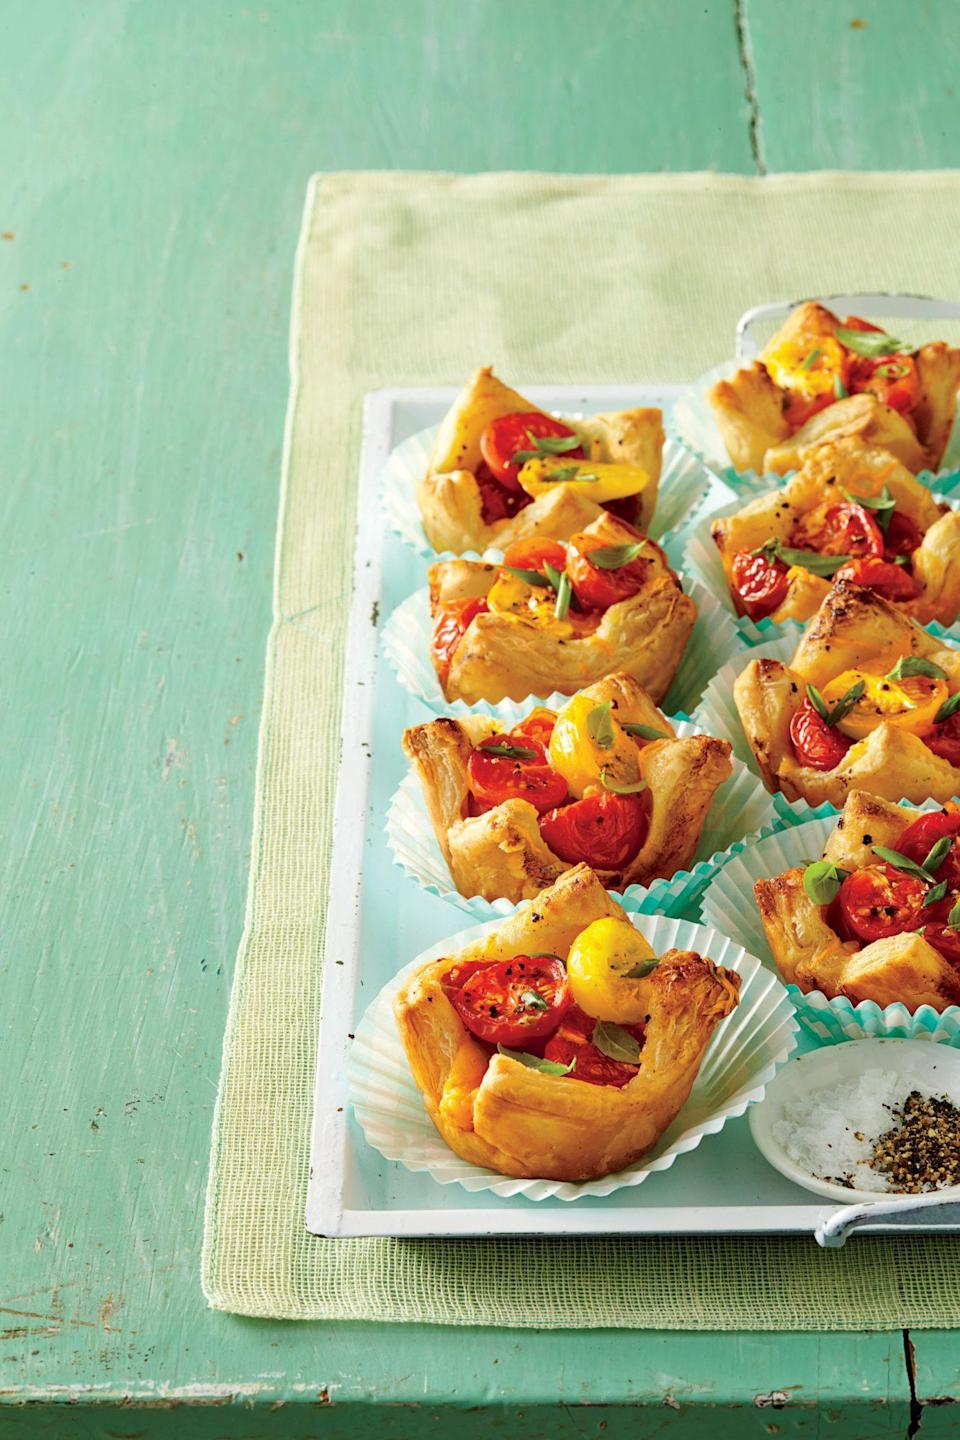 """<p><strong>Recipe: </strong><a href=""""https://www.southernliving.com/syndication/muffin-pan-tomato-tarts"""" rel=""""nofollow noopener"""" target=""""_blank"""" data-ylk=""""slk:Muffin Pan Tomato Tarts"""" class=""""link rapid-noclick-resp""""><strong>Muffin Pan Tomato Tarts</strong></a></p> <p>With this adorable appetizer, family members can each get their own tiny tomato pie.</p>"""